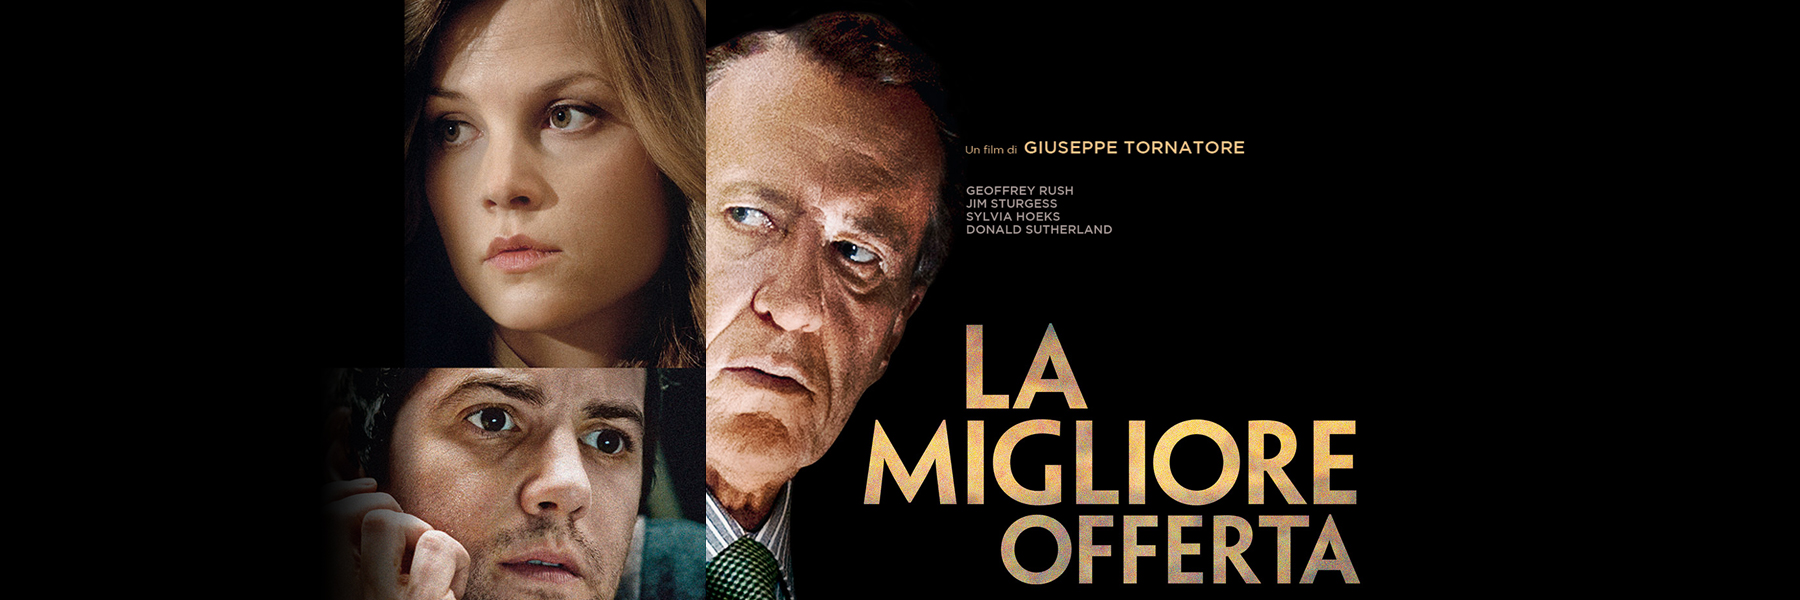 La migliore offerta Streaming